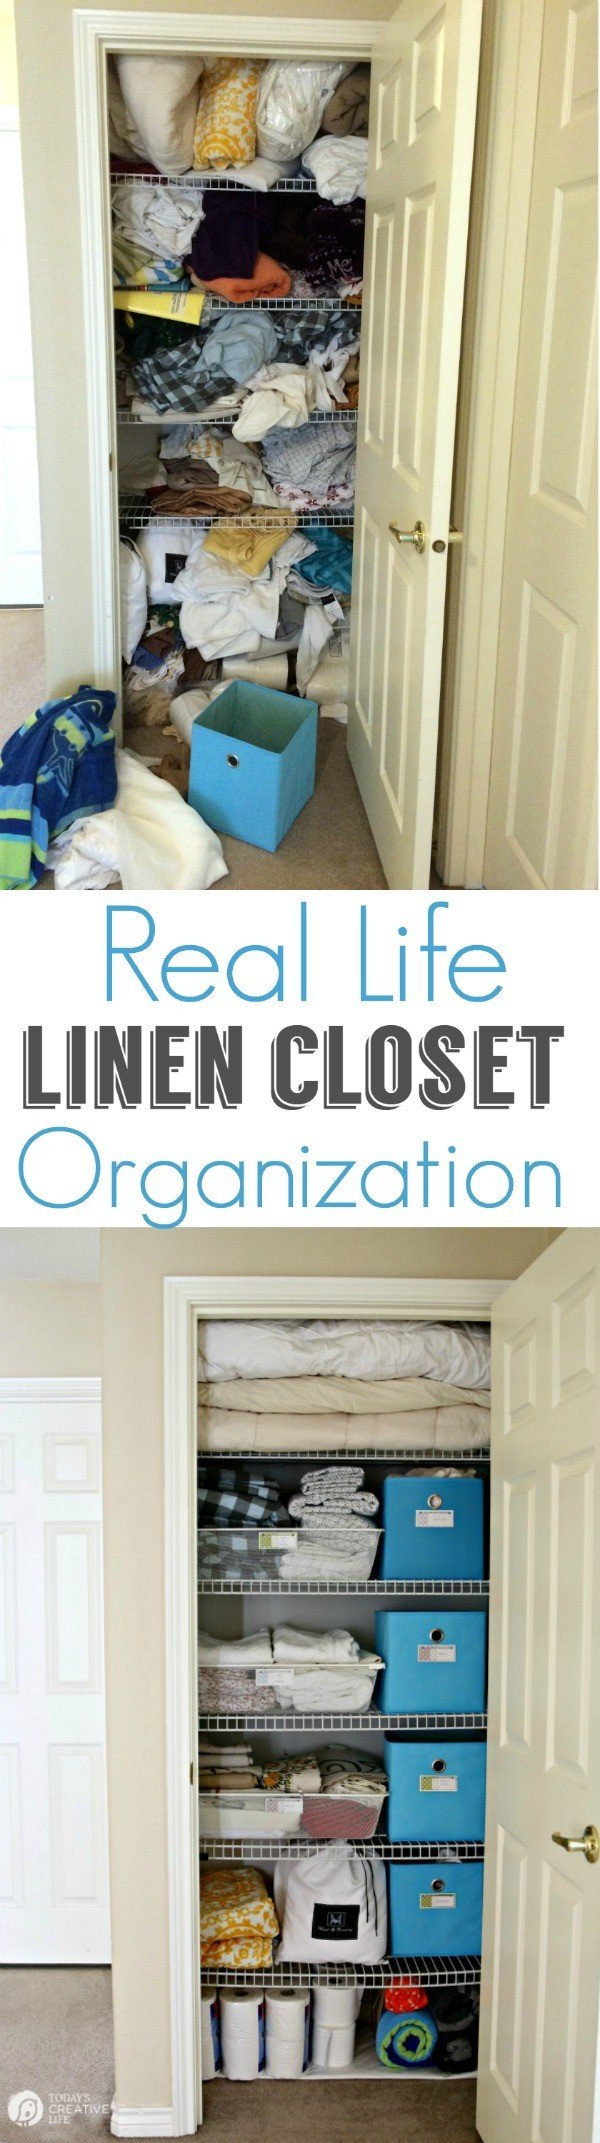 Organized Linen Closet for Real Life   Functional and pretty rarely collide, organize a linen closet for real life isn't going to be magazine ready, but you'll love it! See more on TodaysCreativeLife.com